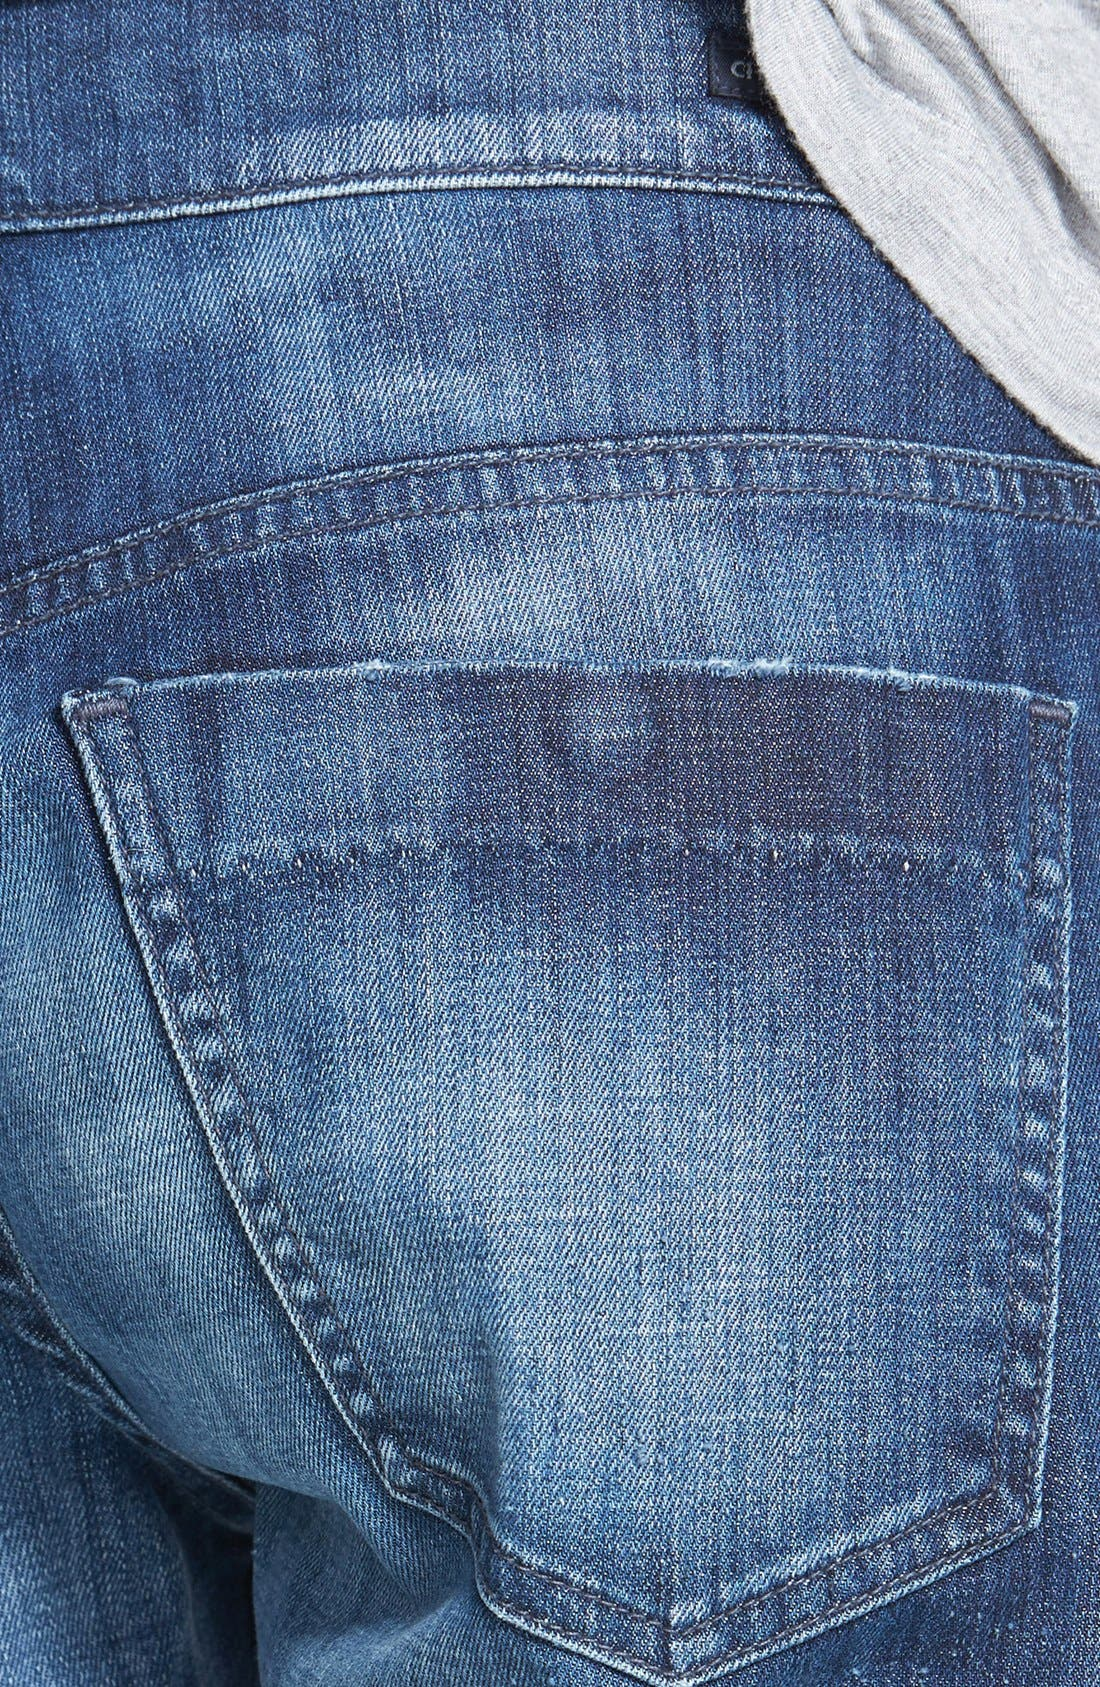 'Skyler' Crop Boyfriend Jeans,                             Alternate thumbnail 3, color,                             Vista